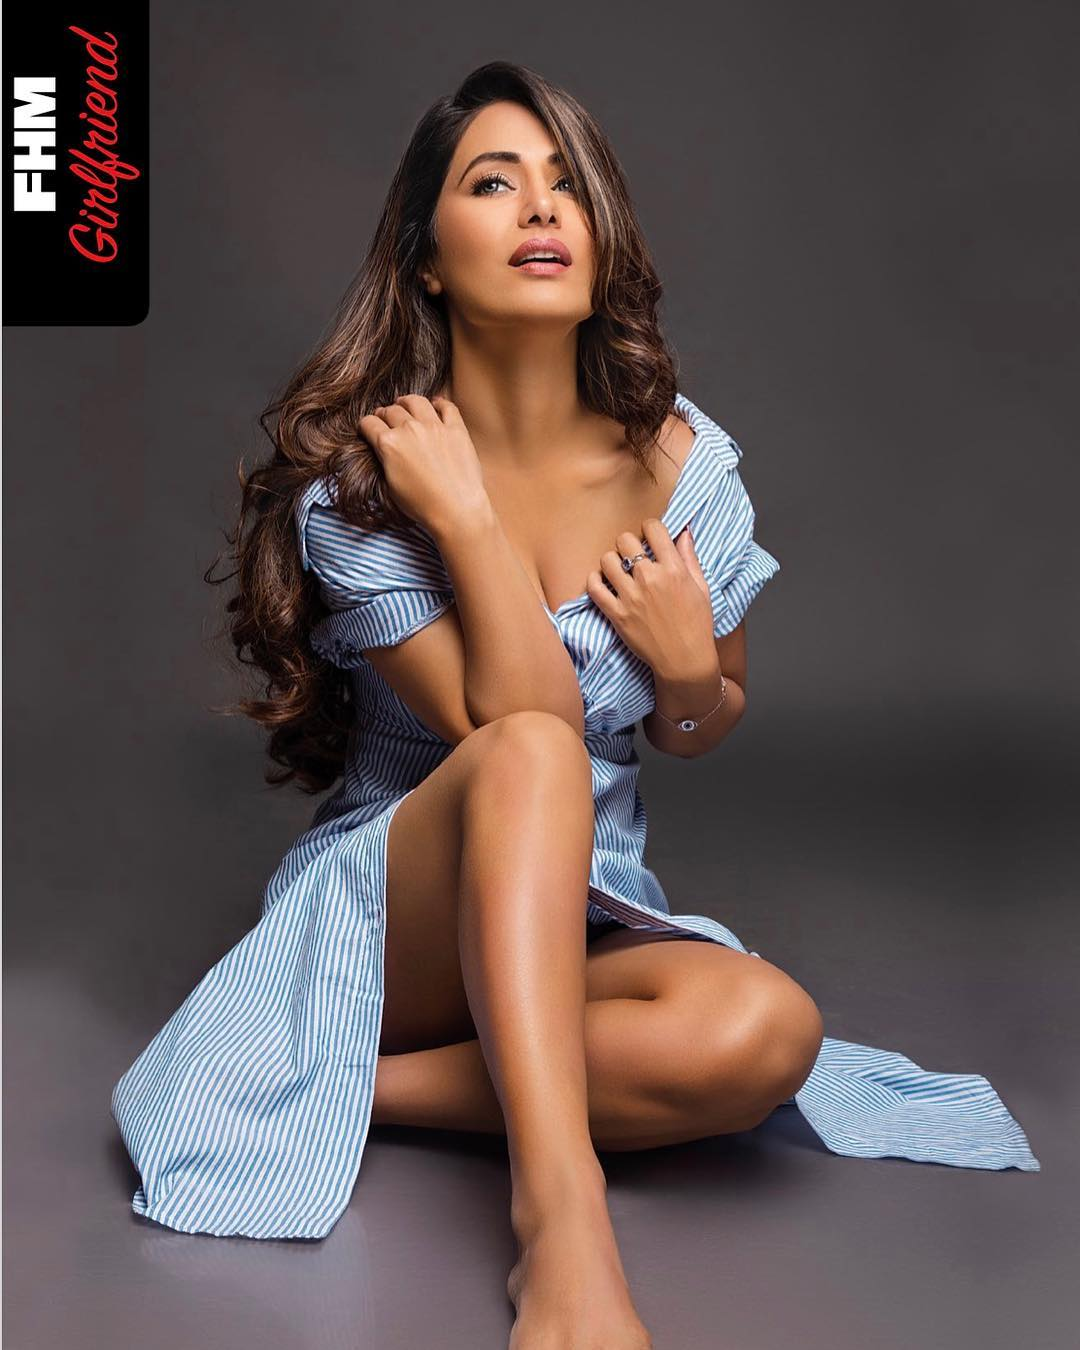 Hina Khan flaunts her legs in bold photoshoot for FHM.